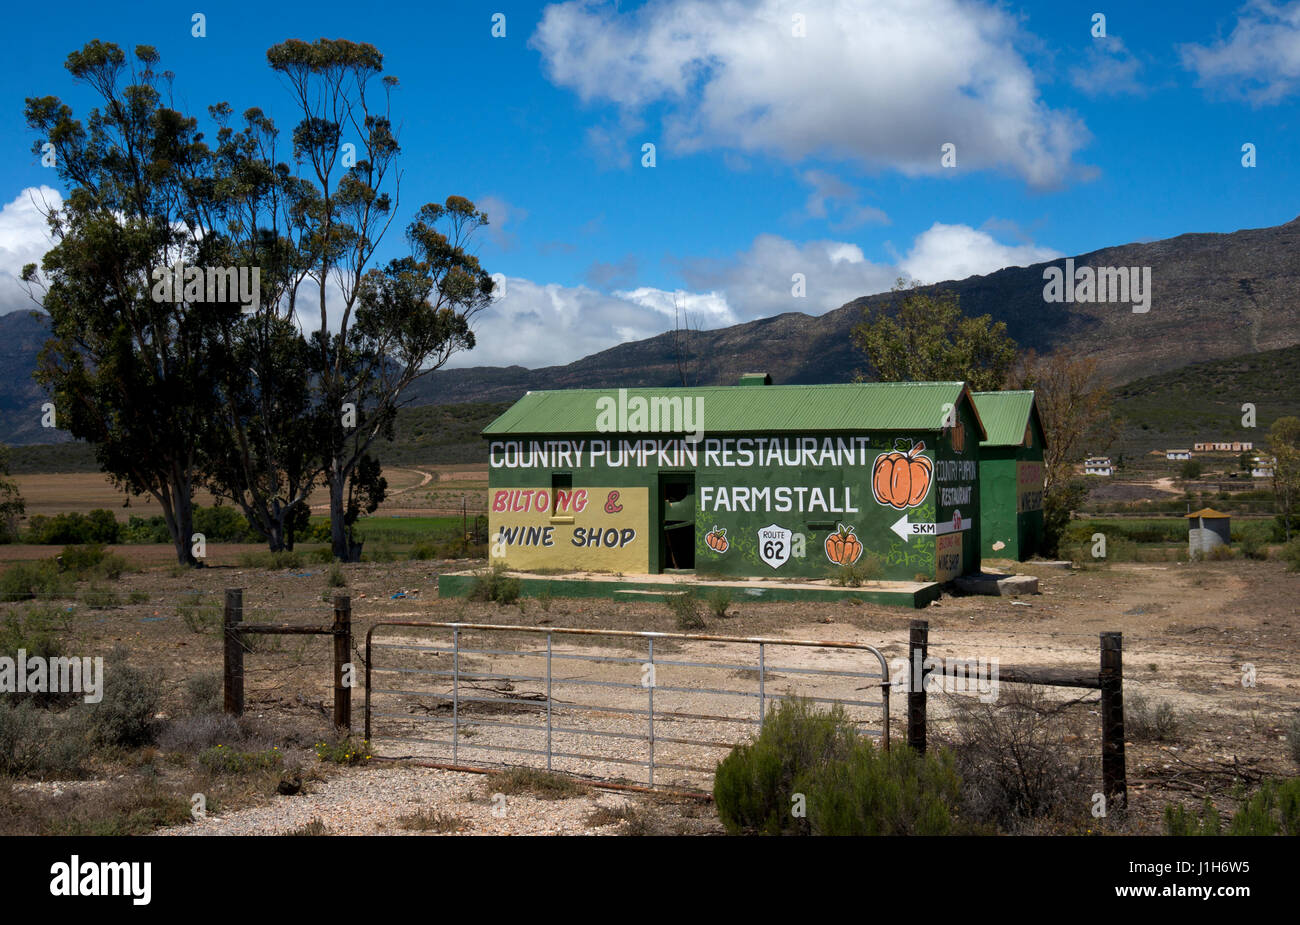 Farm shop on garden route, near Barrydale, western cape, South Africa - Stock Image